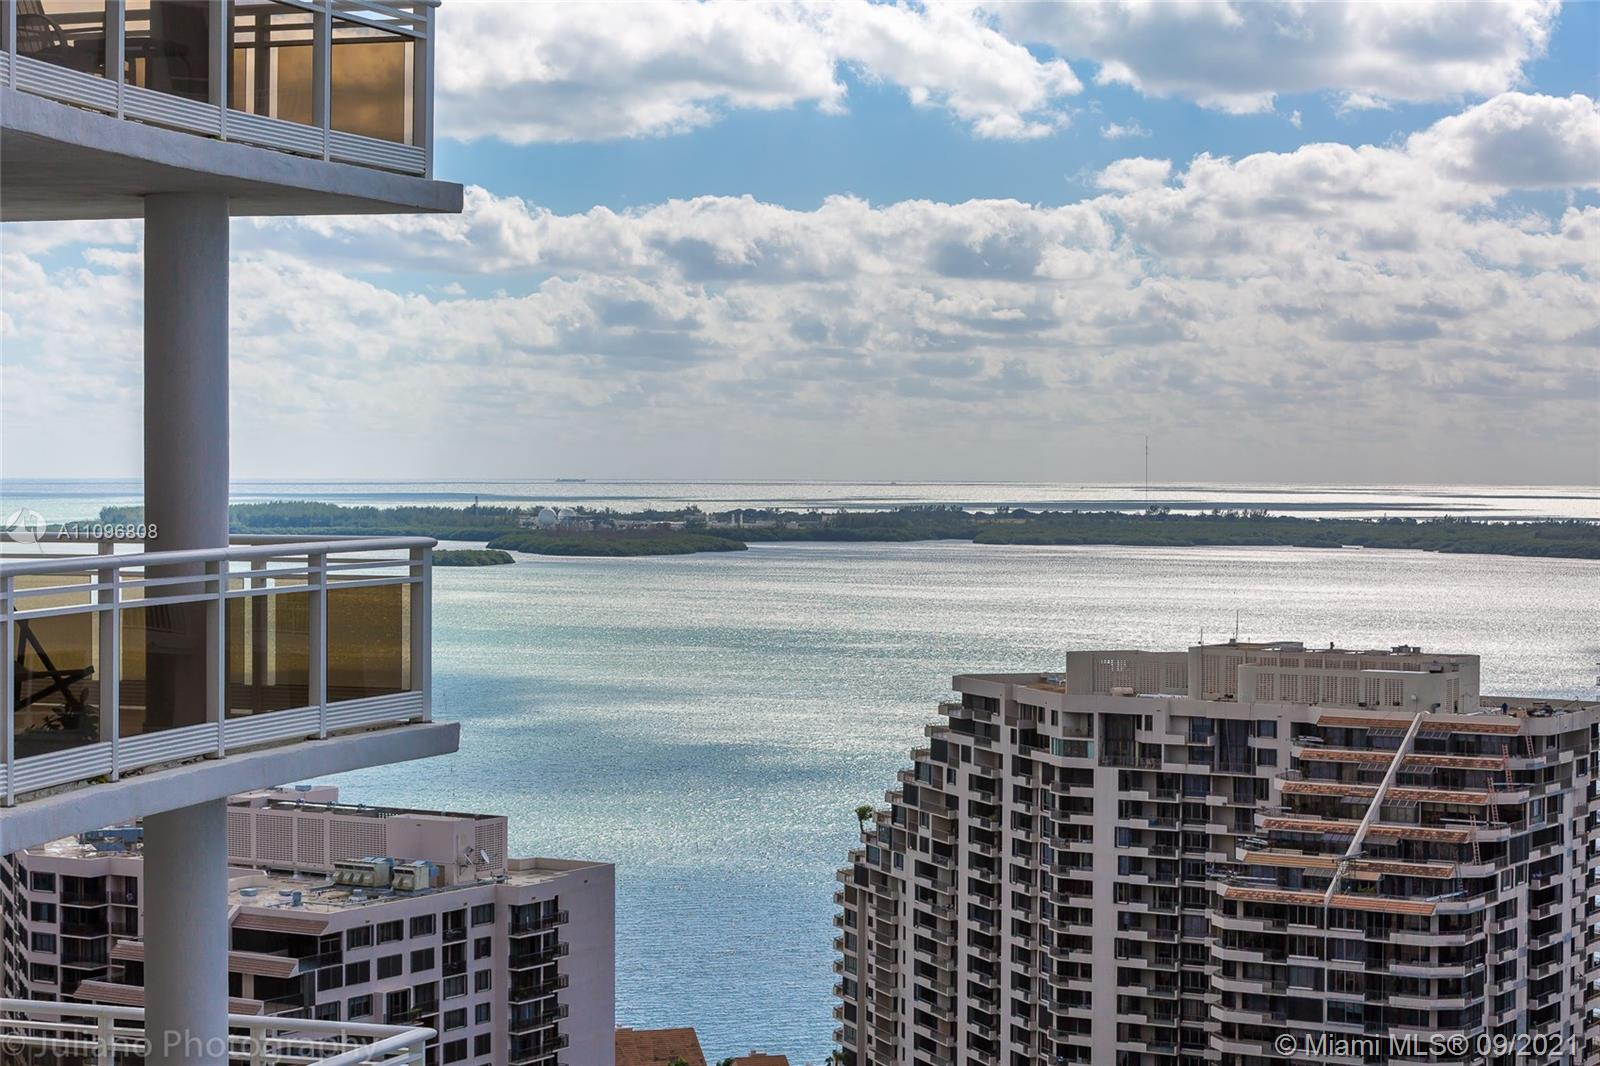 SPECTACULAR UNIT IN THE EXCLUSIVE BRICKELL KEY ISLAND,10' HIGH FLOOR TO CEILING WINDOWS OFFERING 1 BEDROOM, 1.5 BATH WITH WATER VIEWS, LIMESTONE FLOORS THROUGHOUT, BAMBOO FLOORS IN THE BEDROOM. SUB-ZERO STAINLESS STEEL APPLIANCES INCLUDING WINE COOLER, GRANITE COUNTER TOPS, COSTUME MADE WALKING CLOSET, EXCELLENT AMENITIES: STATE OF THE ART FITNESS CENTER, WITH GLASS ENCLOSED RACQUETBALL, SQUASH, TENNIS,AND SAUNA. PRIVATE ENTRANCE WITH GUARD GATE,1 ASSIGNED PARKING, AND VALET SERVICE.